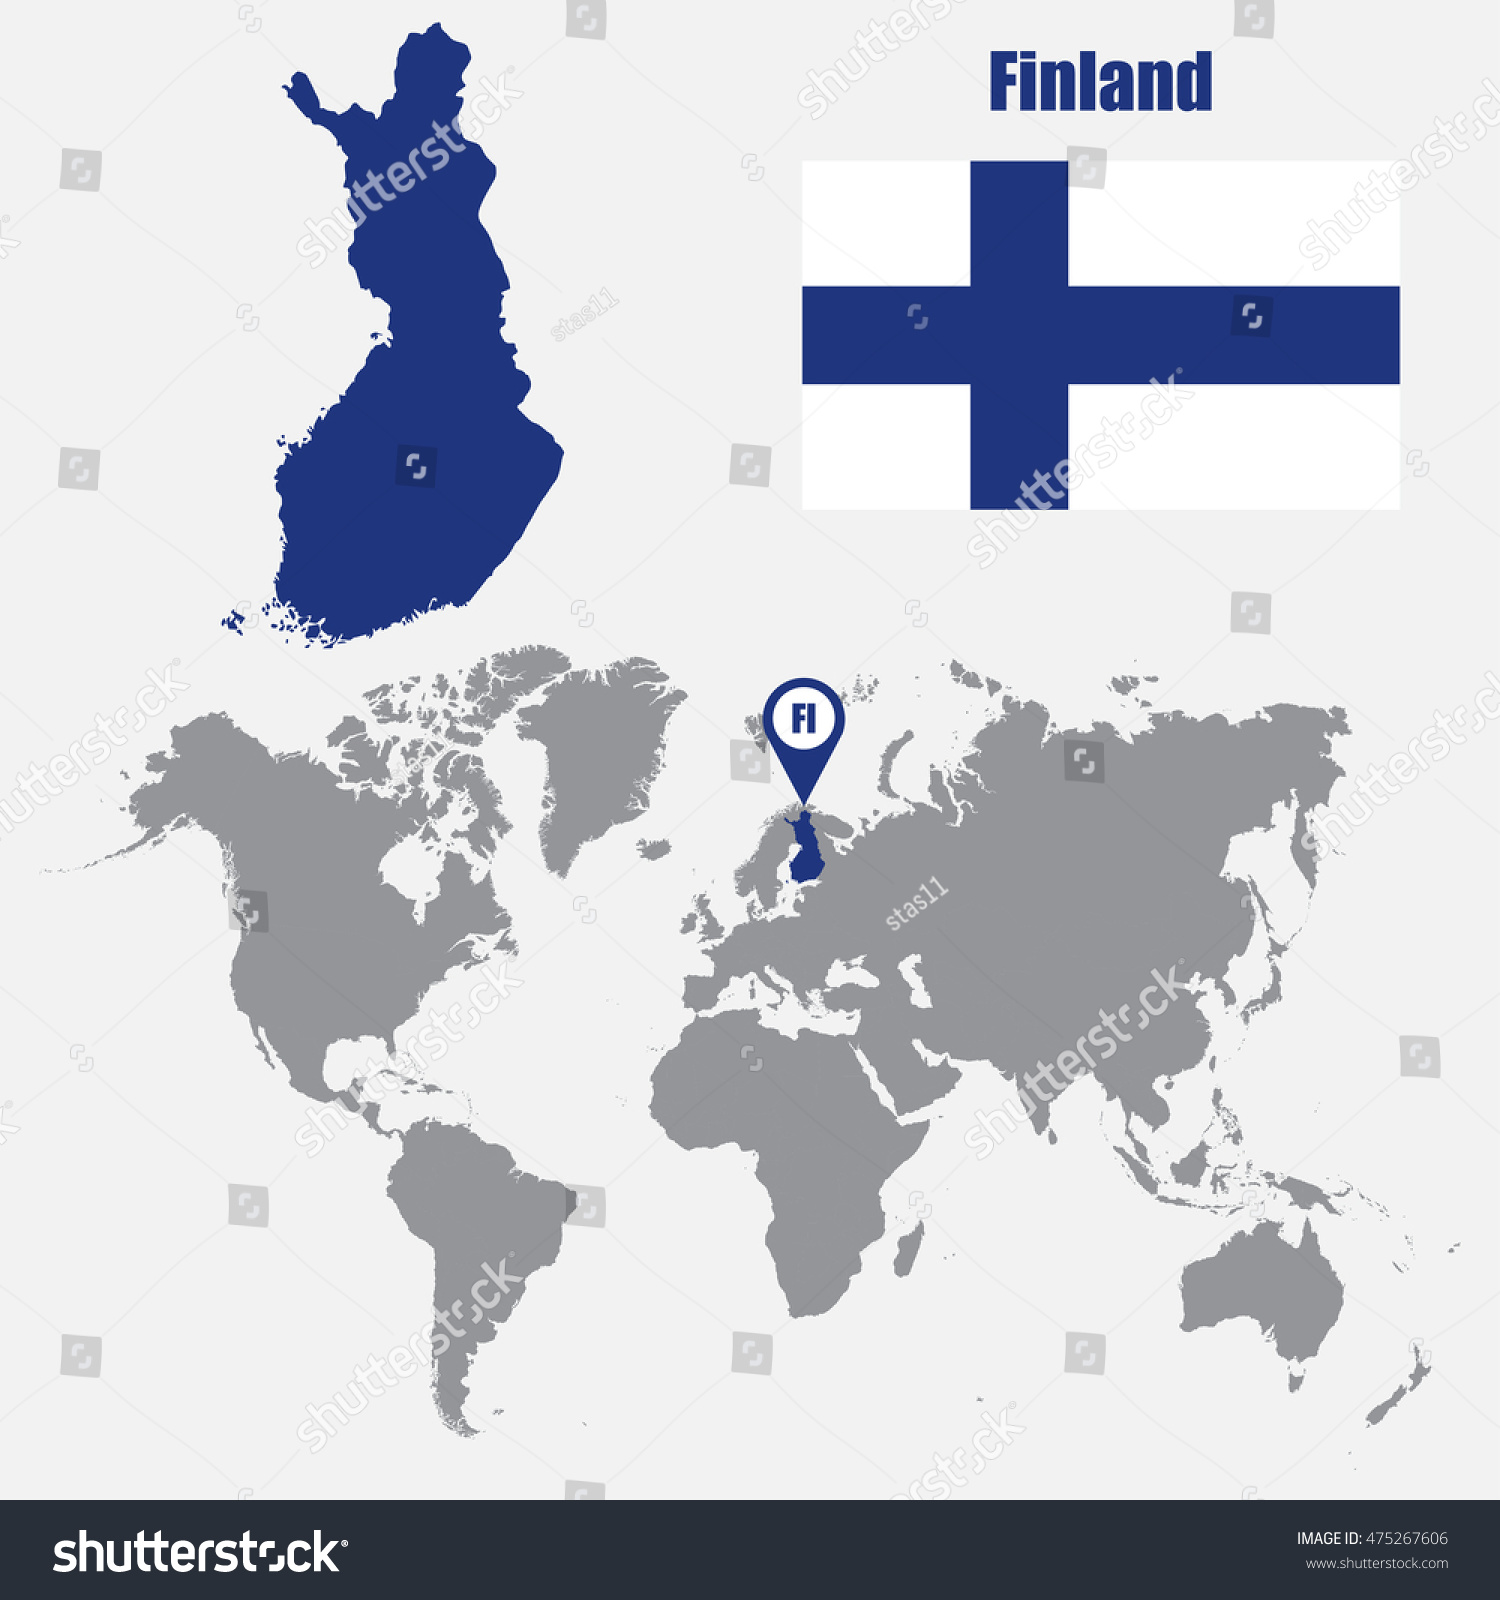 Finland Map On World Map Flag Stock Vector (Royalty Free) 475267606 ...